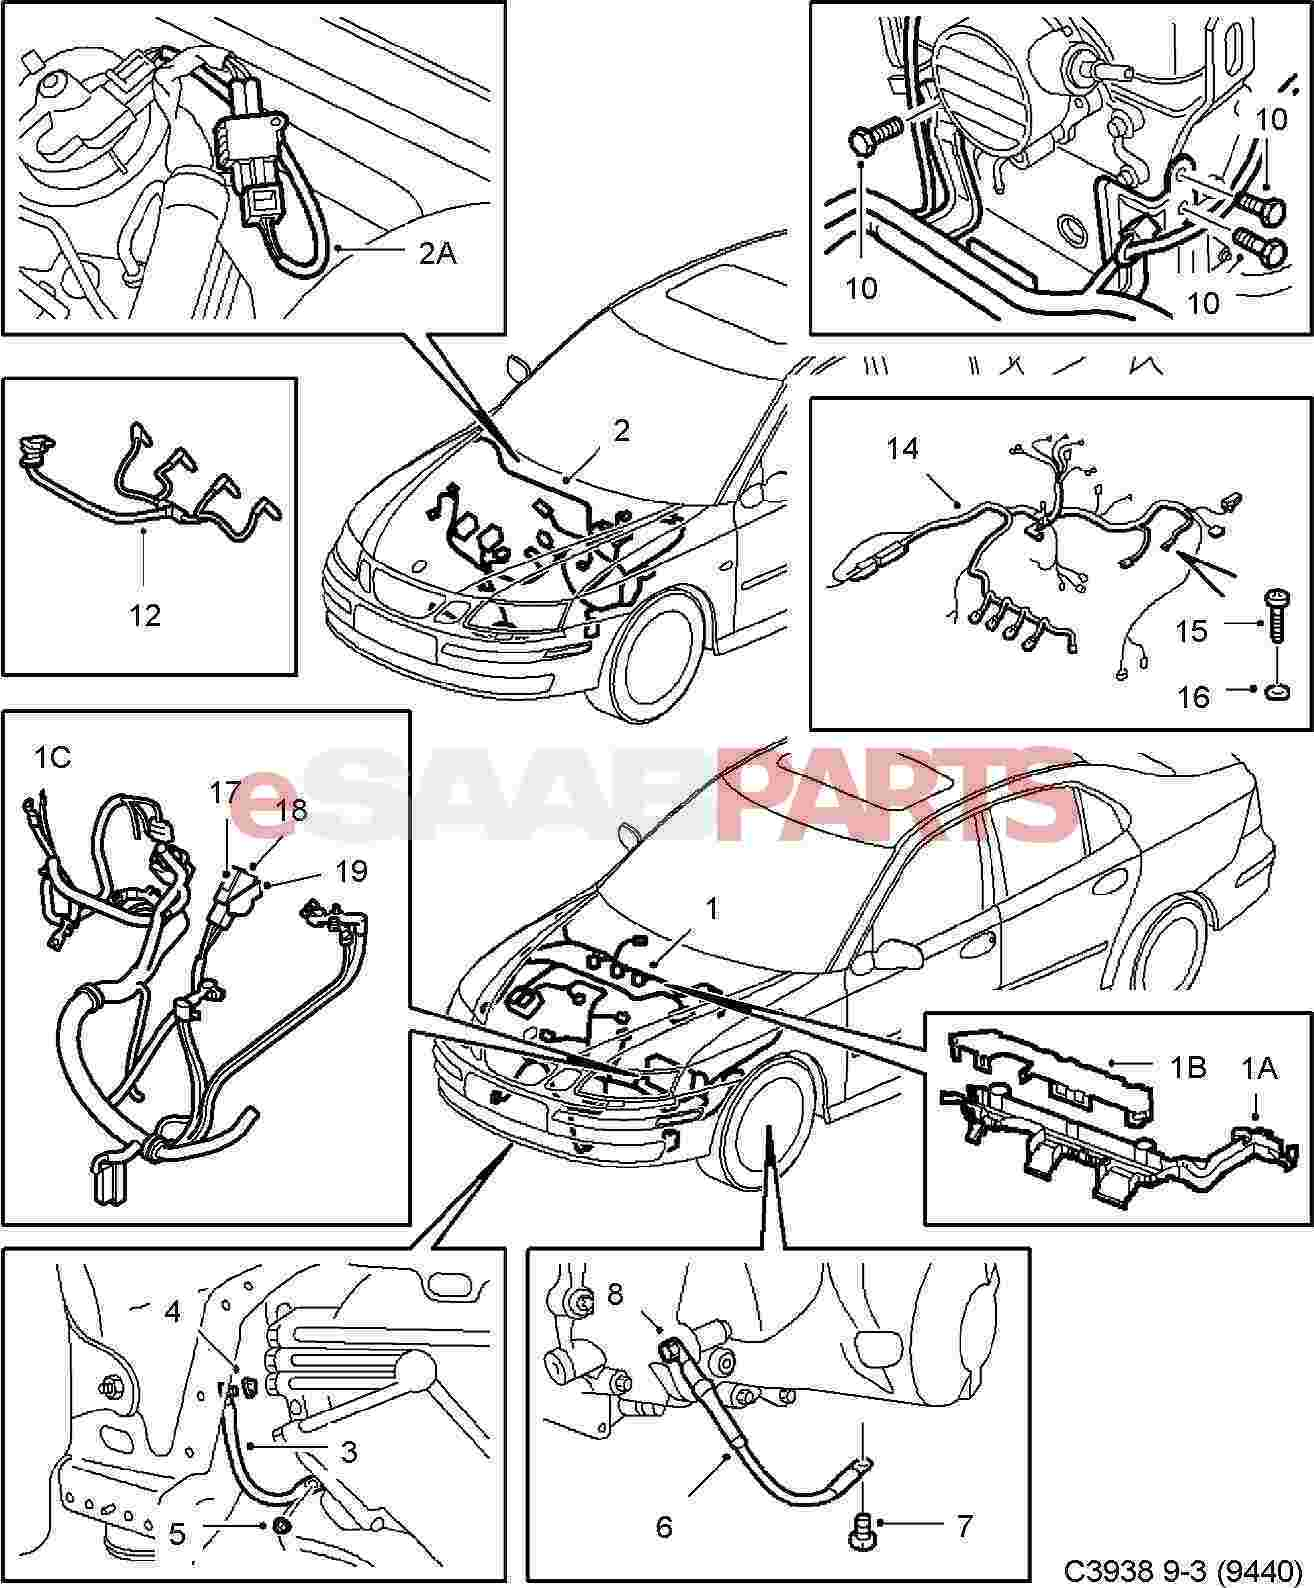 hight resolution of esaabparts com saab 9 3 9440 electrical parts wiring harness engine transmission motor transmission